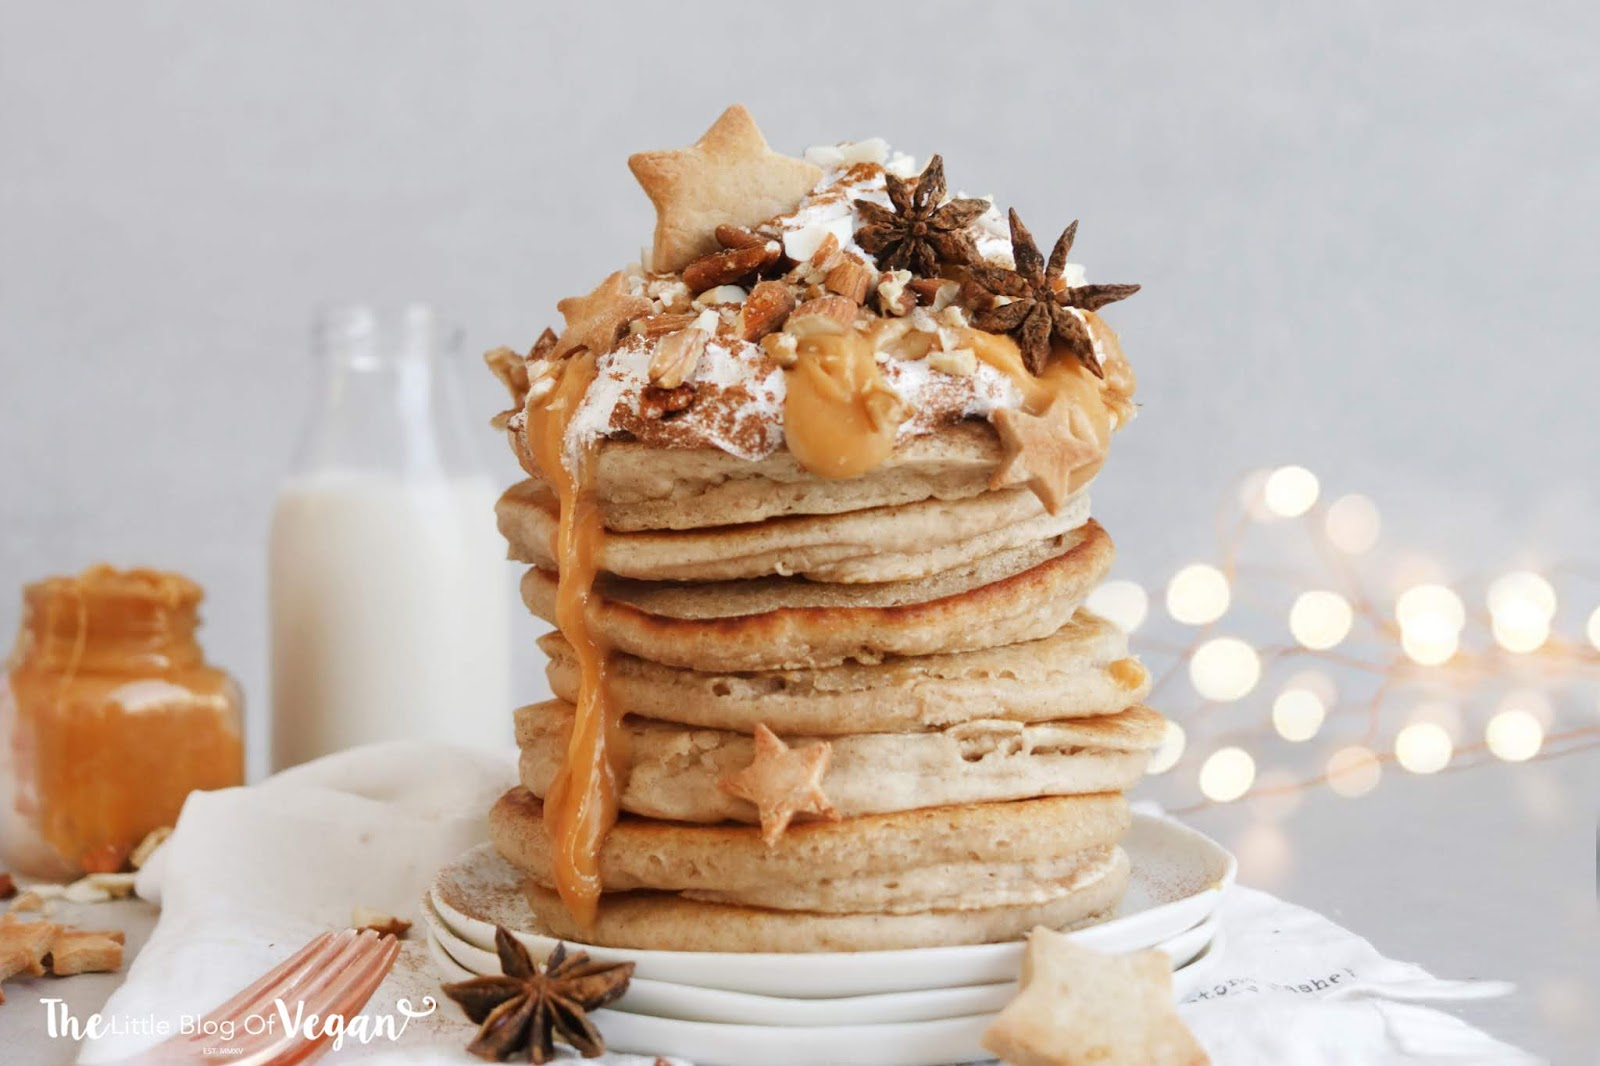 Starbucks inspired Vegan Toffee Nut Pancakes recipe